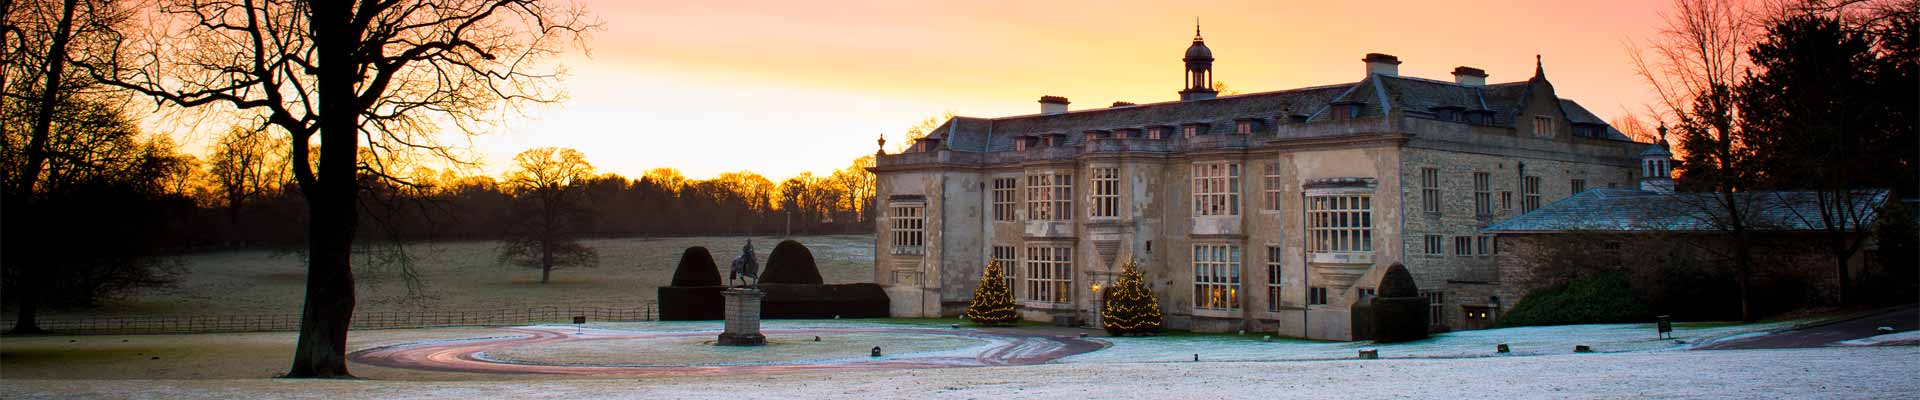 Image of Hartwell House at dawn